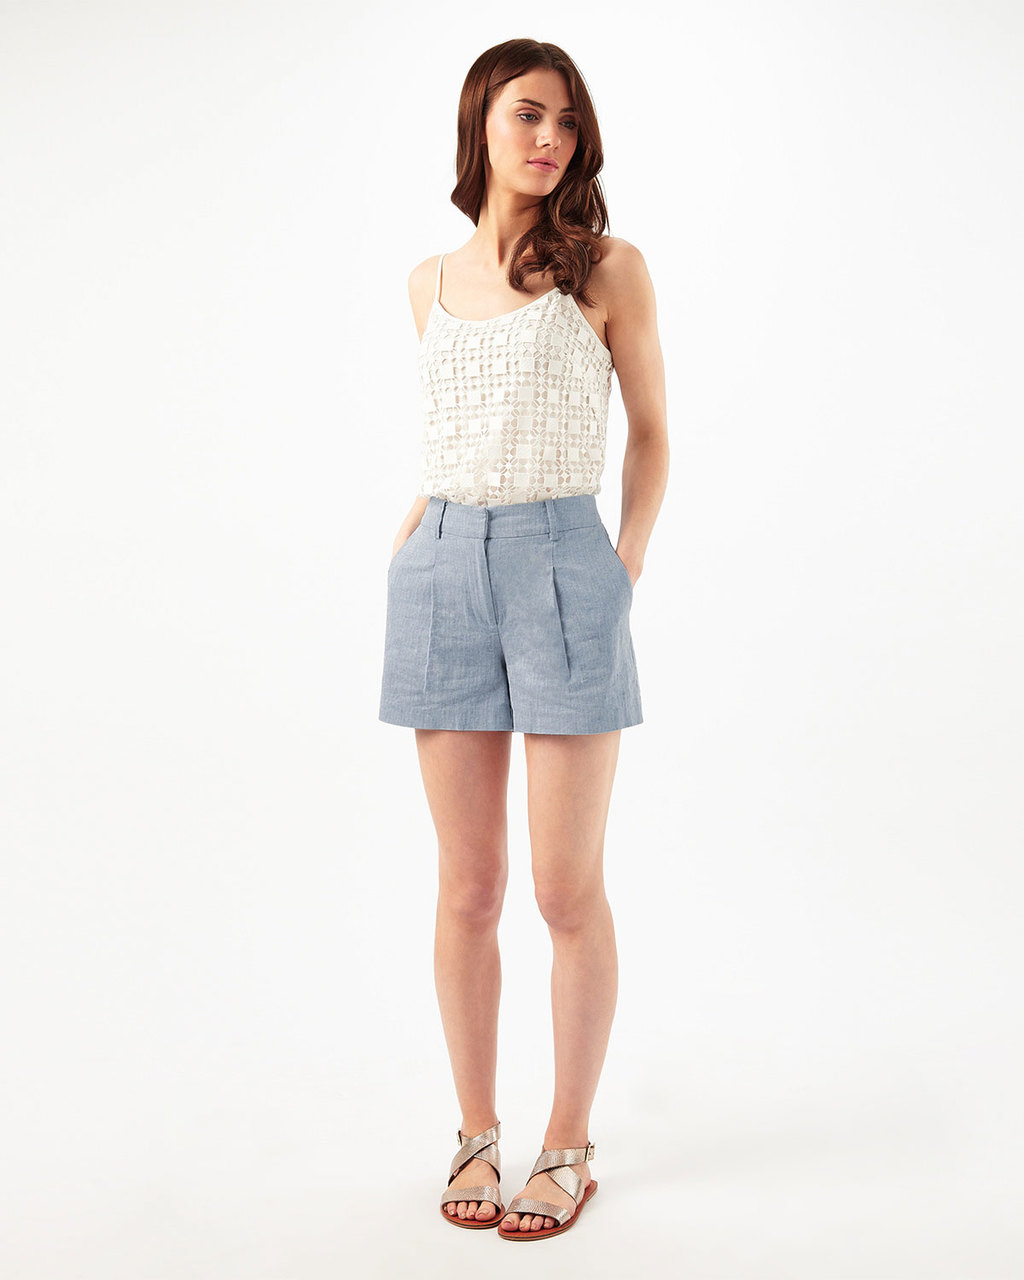 Harri Linen Short - pattern: pinstripe; waist: high rise; secondary colour: white; predominant colour: pale blue; occasions: casual, holiday; fibres: cotton - 100%; hip detail: subtle/flattering hip detail; texture group: linen; pattern type: fabric; season: s/s 2016; style: shorts; length: short shorts; fit: slim leg; wardrobe: holiday